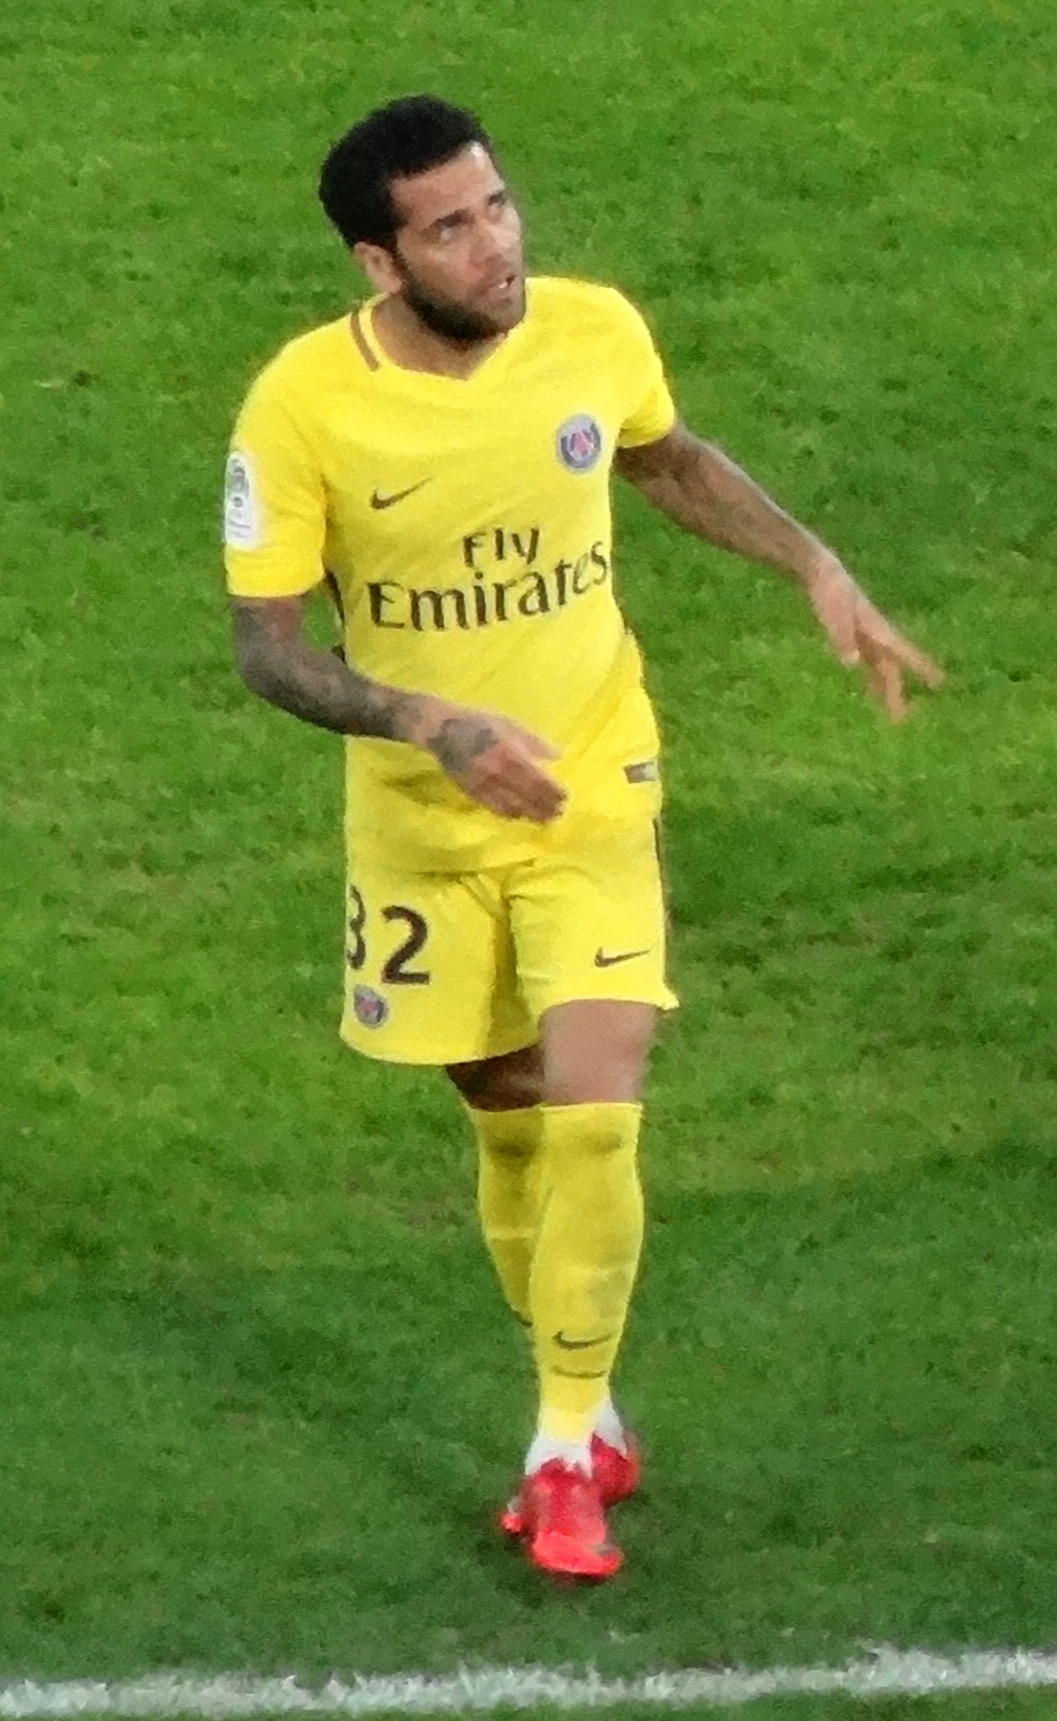 adb715815bf Dani Alves - Wikipedia